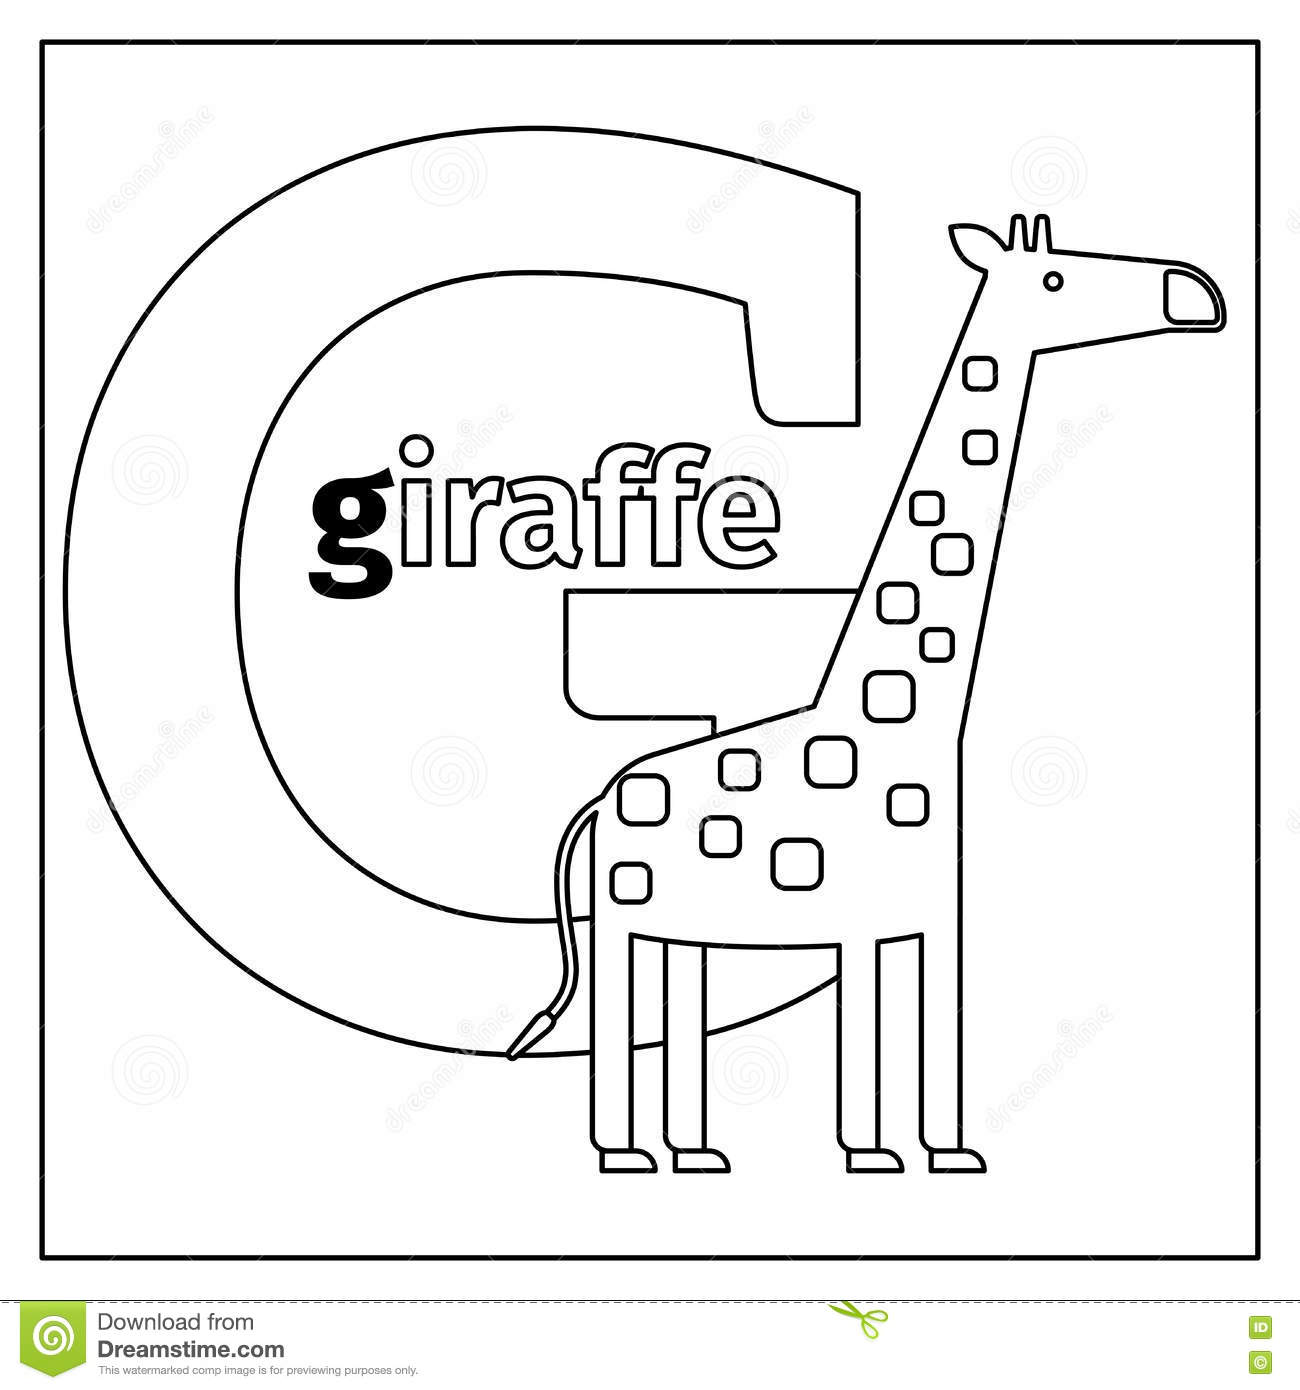 Giraffe Letter G Coloring Page Stock Vector